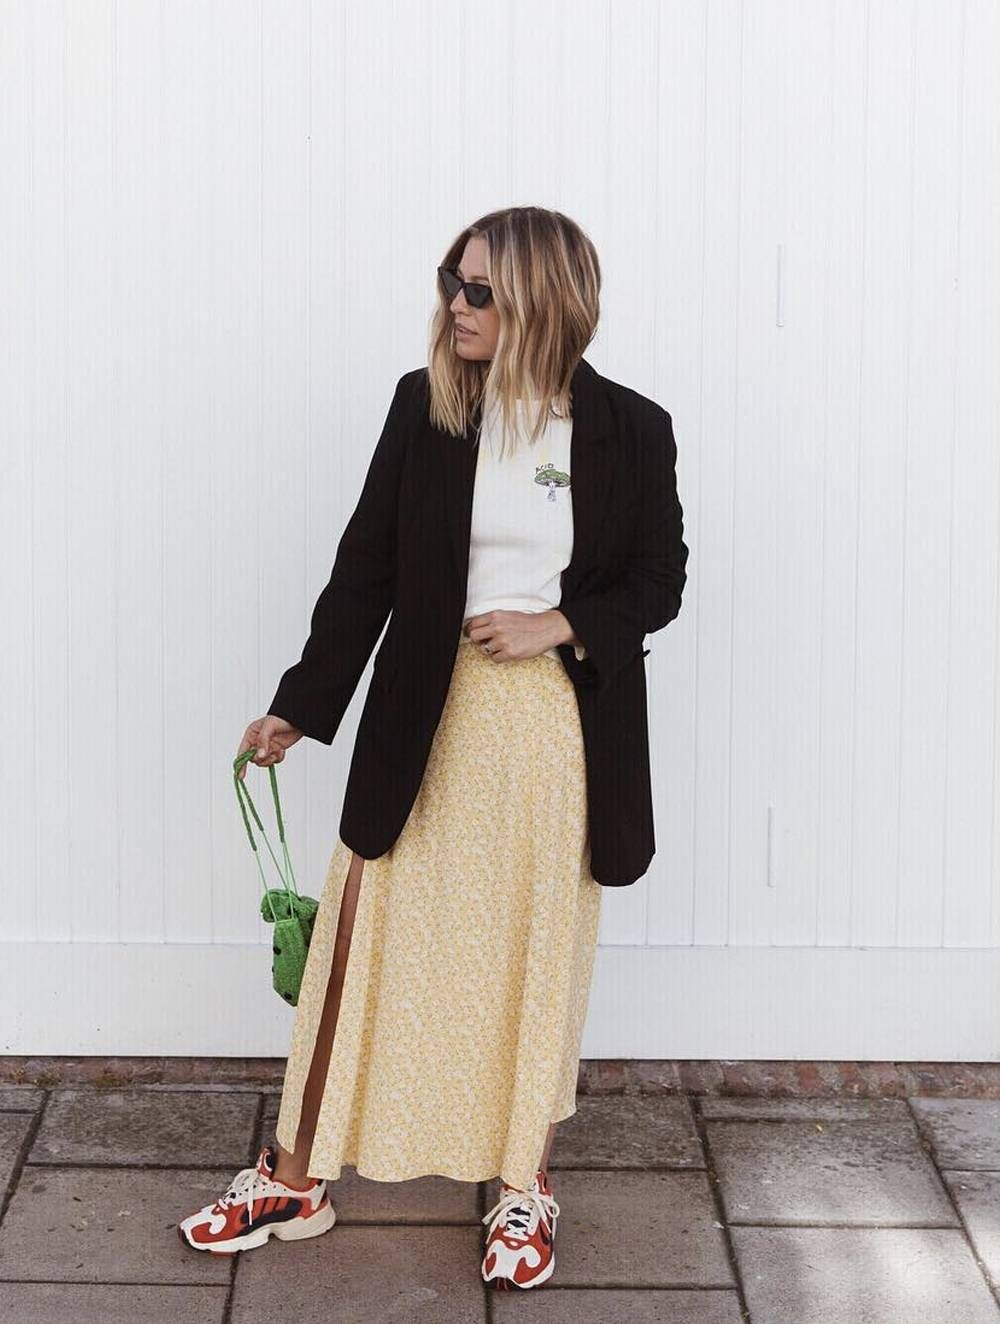 18 Easy and Stylish Outfit Ideas Anyone Can Pull Off